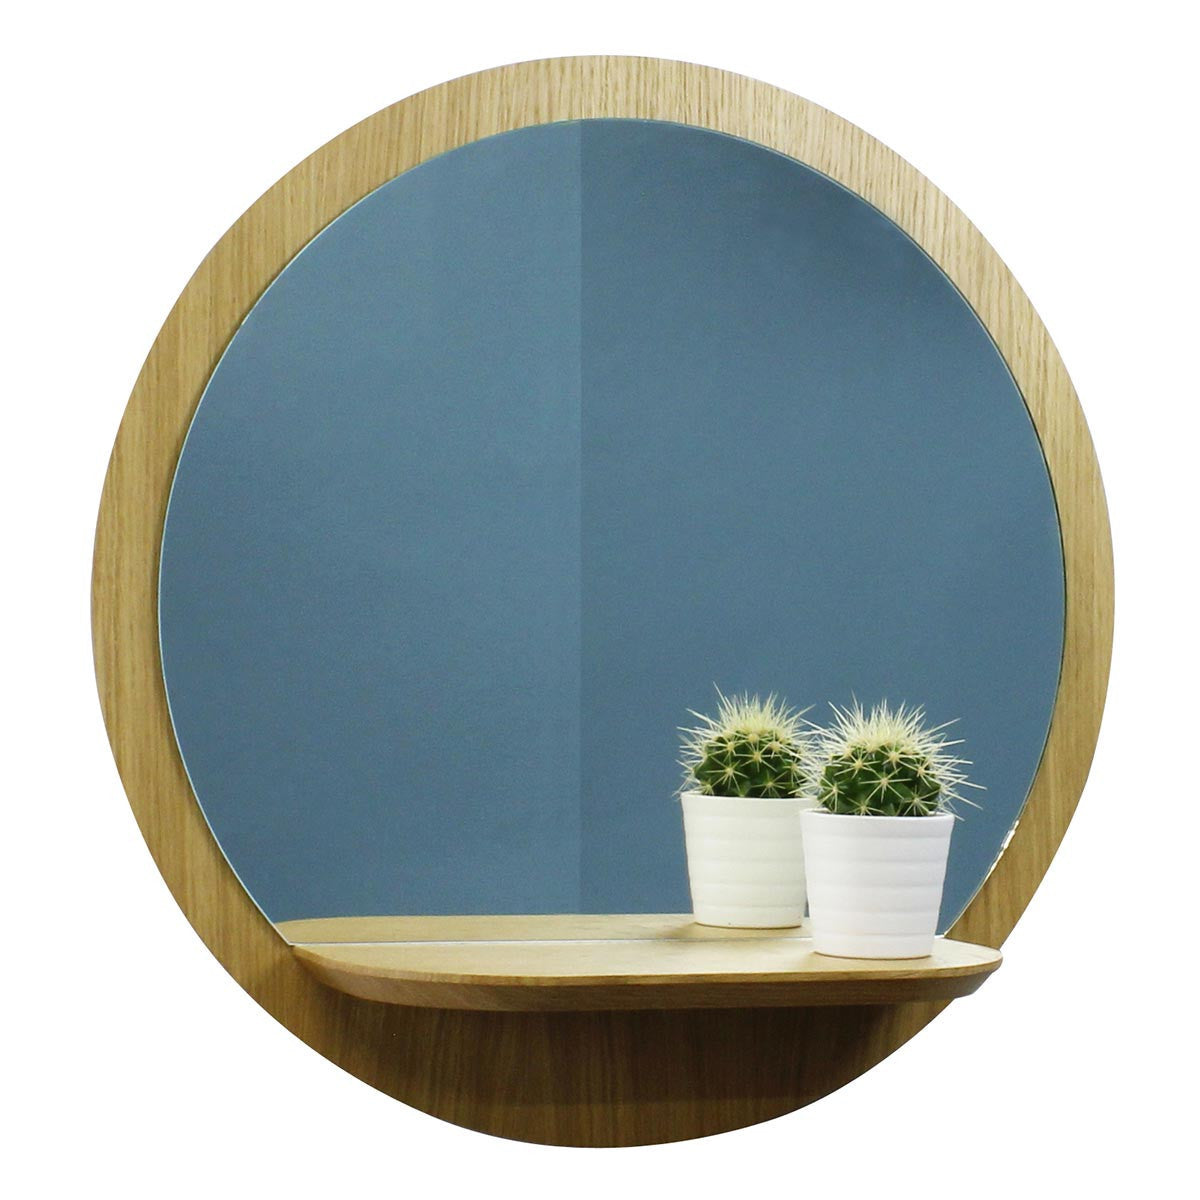 miroir mural rond en bois 30 cm avec tablette sunrise reine m re le cochon truffier. Black Bedroom Furniture Sets. Home Design Ideas